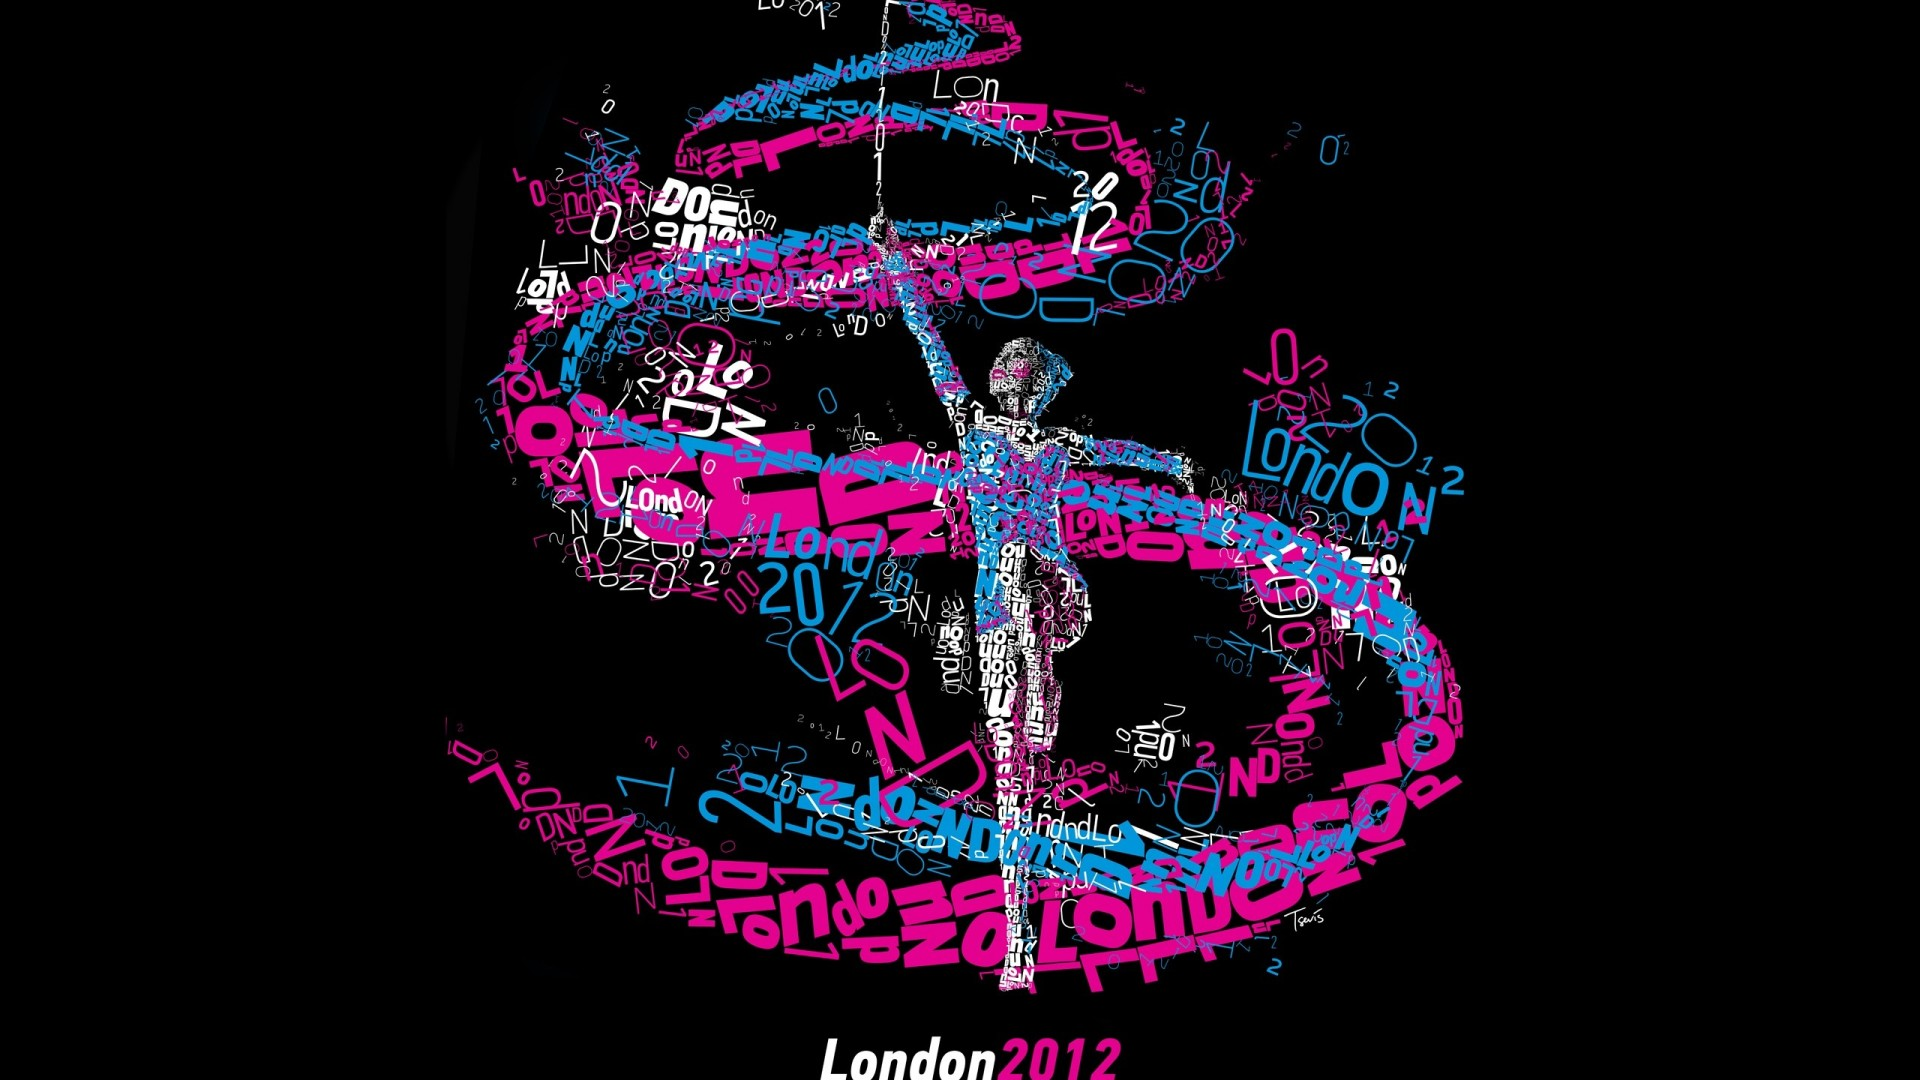 black_background_typographic_portrait_gymnastics_london_2012_1920x1080_11695.jpg